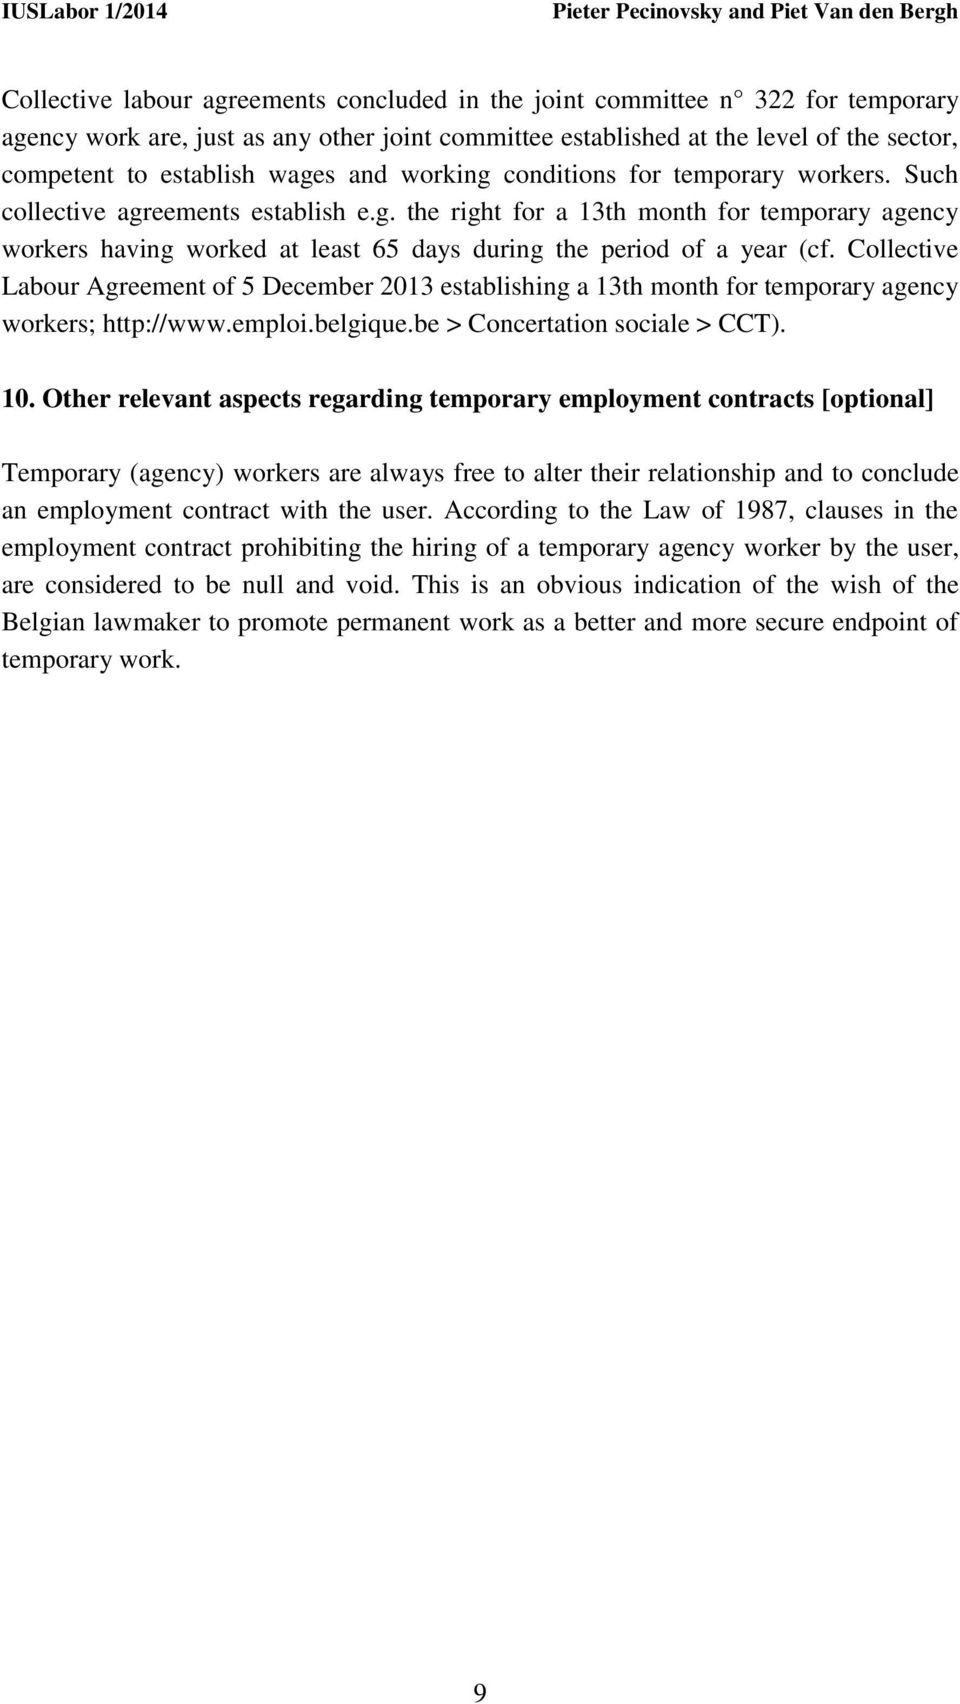 Collective Labour Agreement of 5 December 2013 establishing a 13th month for temporary agency workers; http://www.emploi.belgique.be > Concertation sociale > CCT). 10.